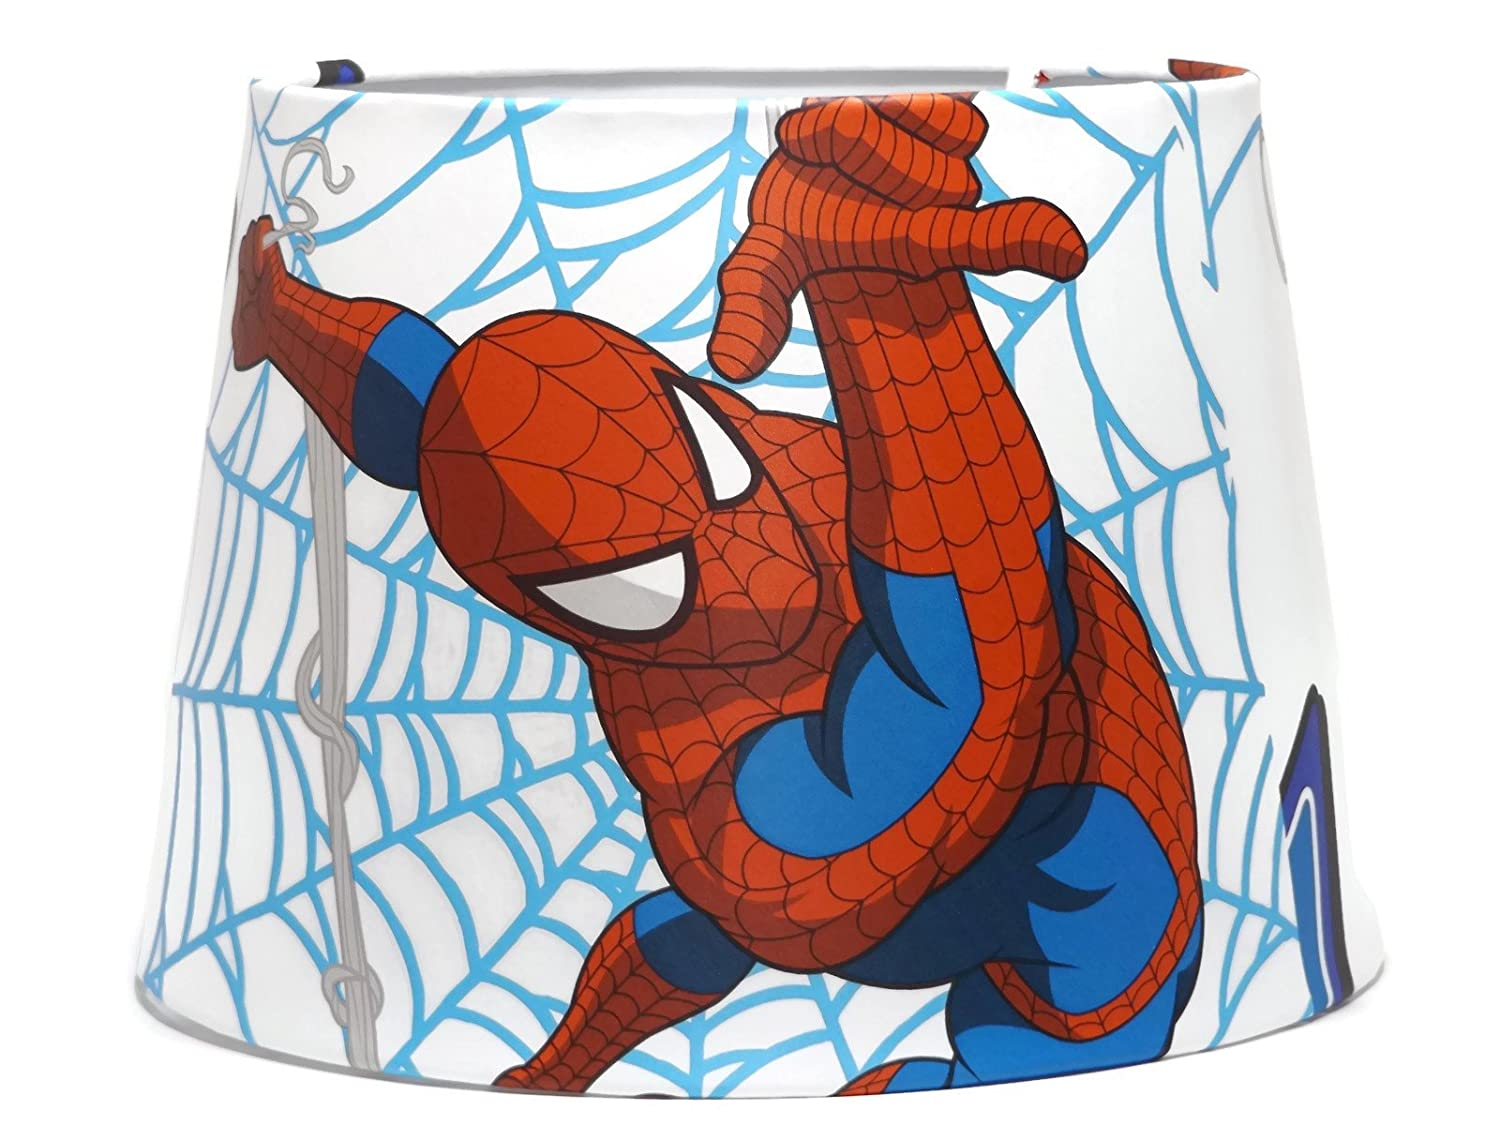 Marvel Avengers Spiderman Lampshade or Ceiling Light Shade Comic ...